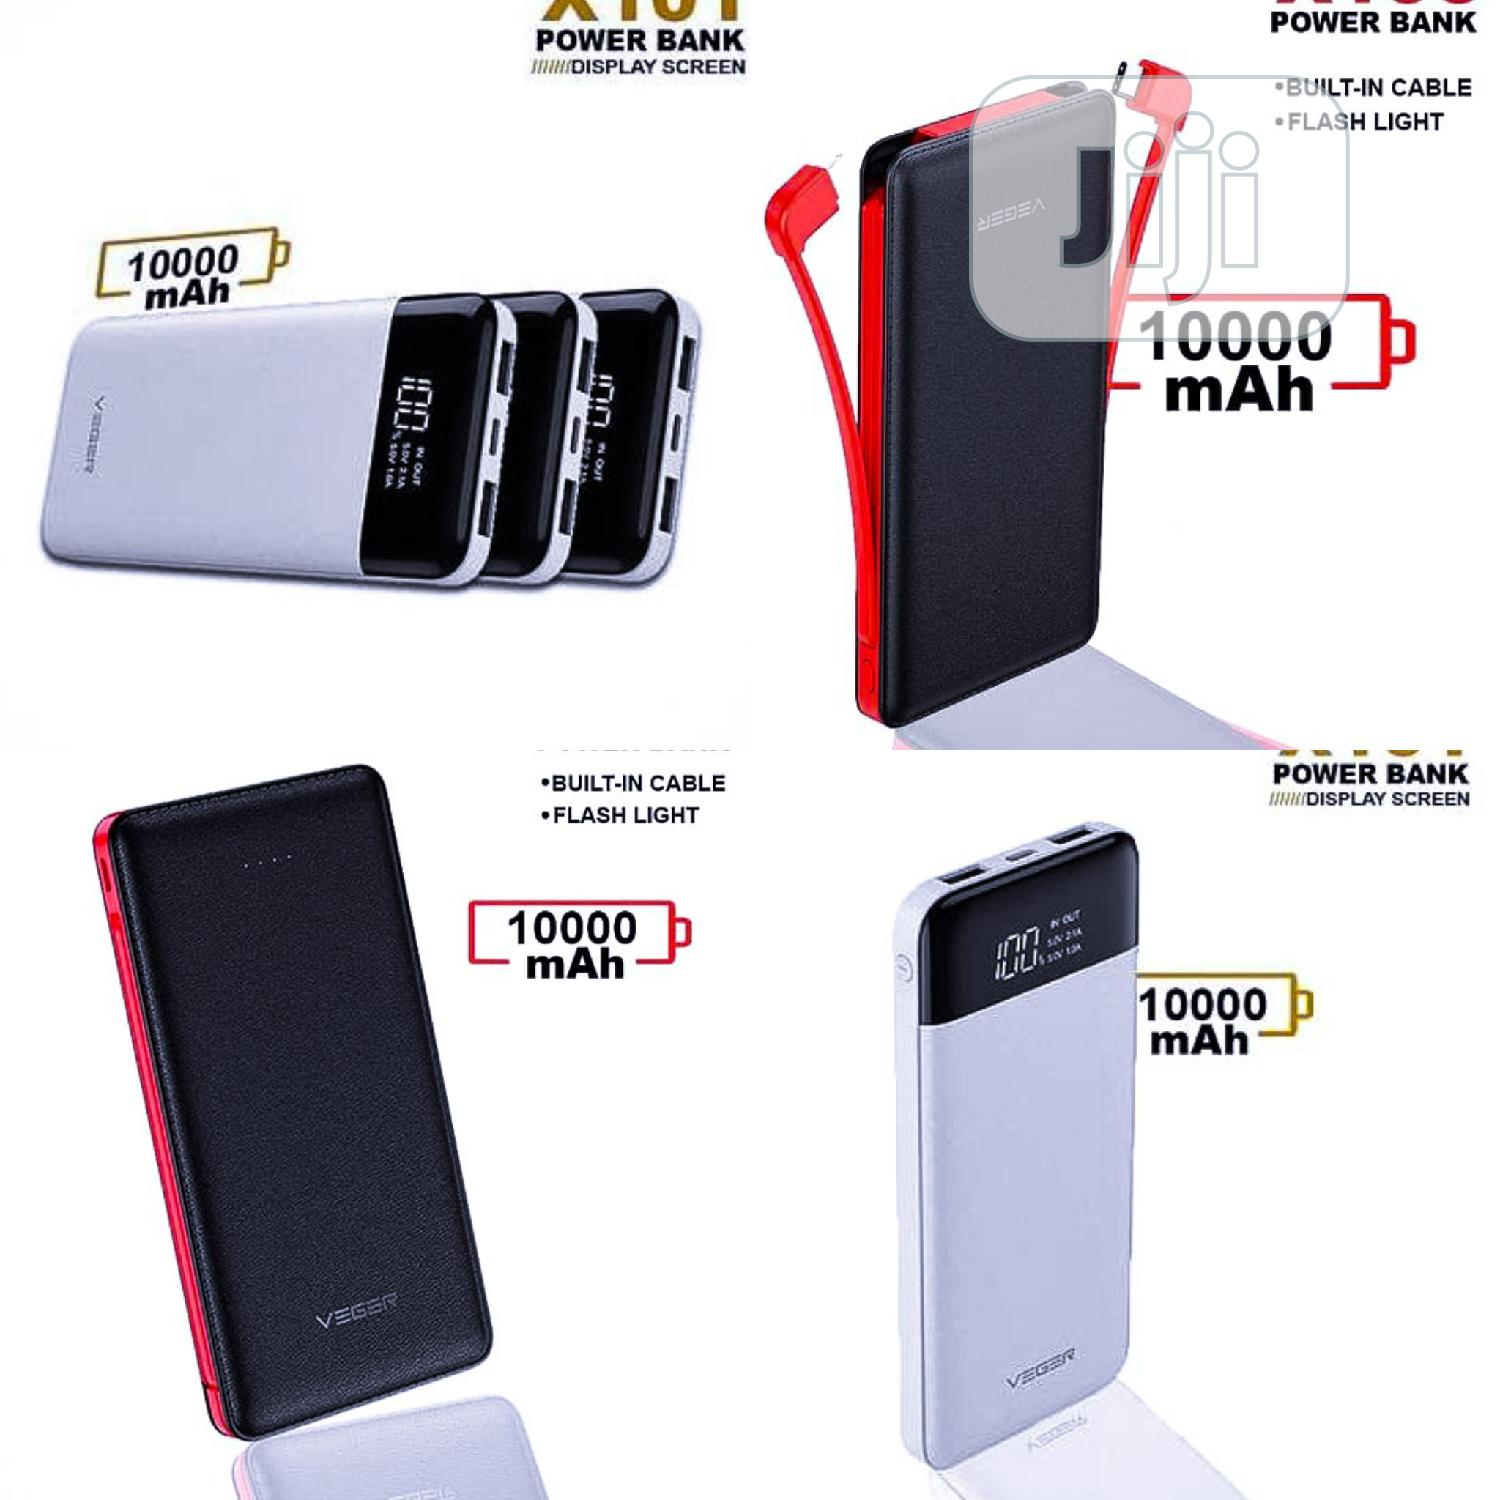 10,000mah Power Bank Double Cable for Corporate Gifts